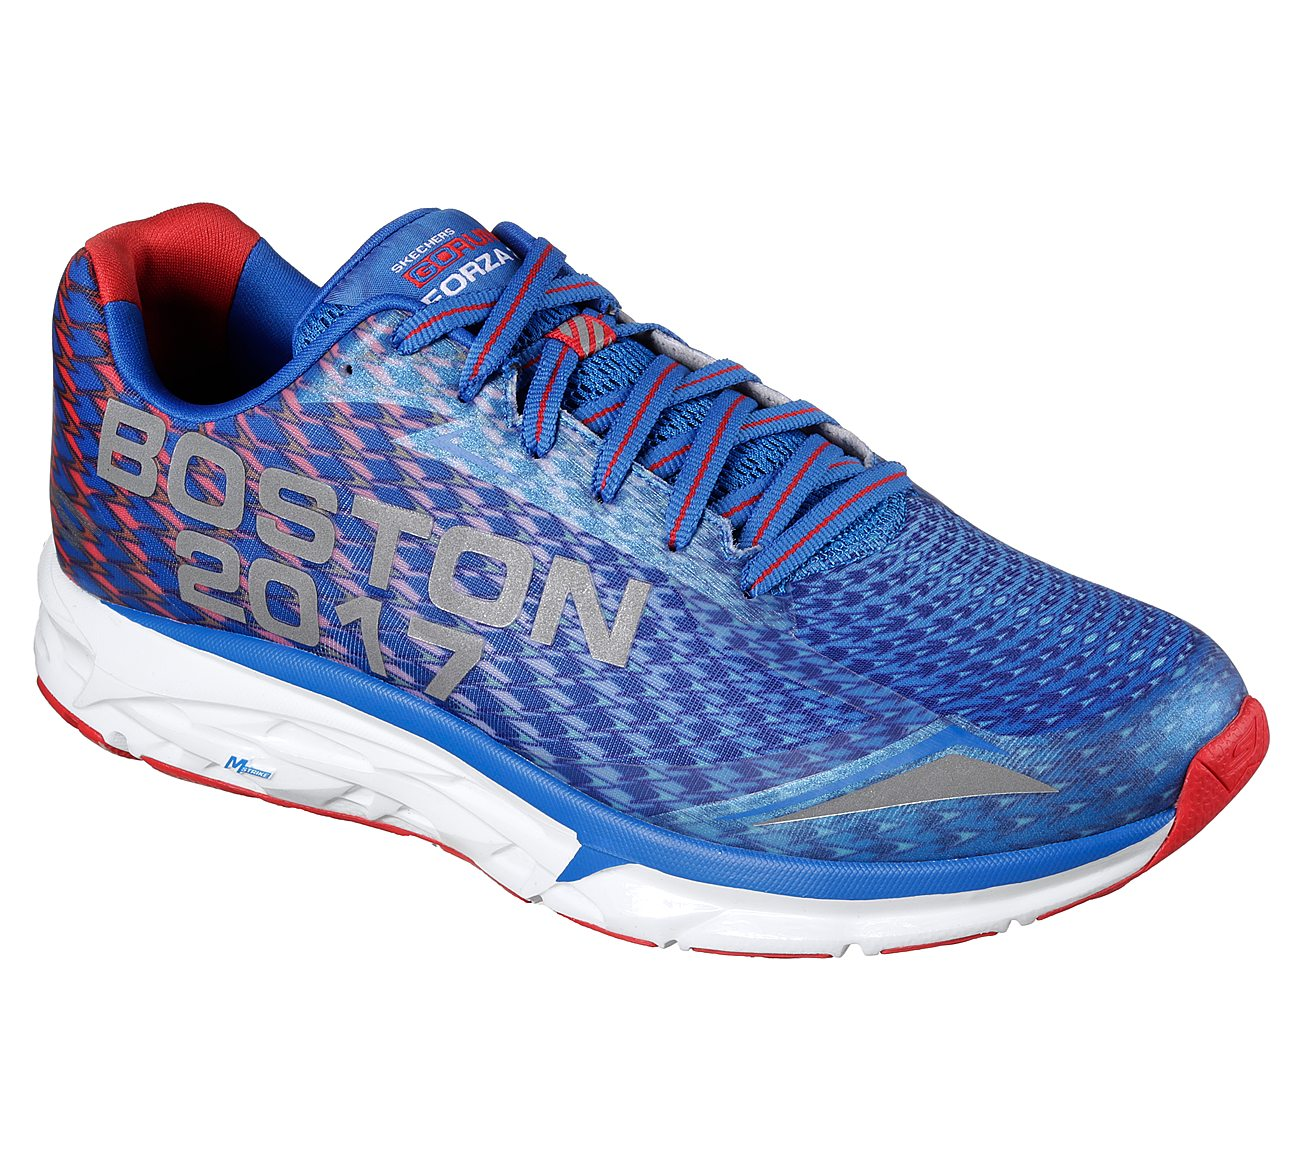 Skechers GOrun Forza 2 - Boston 2017